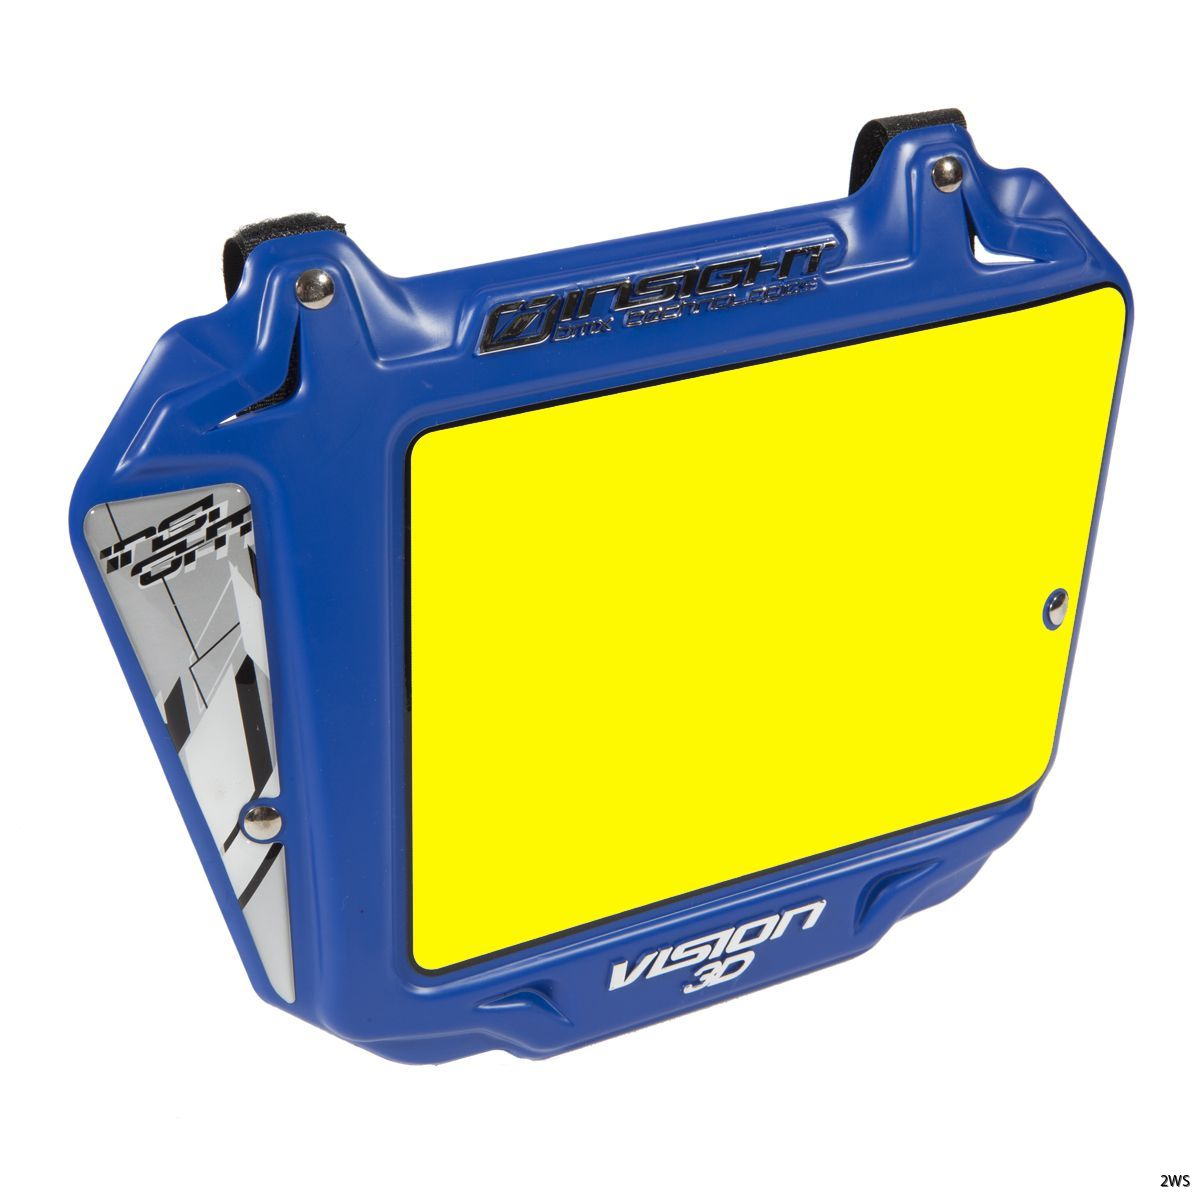 insight-number-plate-vision-3d-pro-yellow-bg (2)